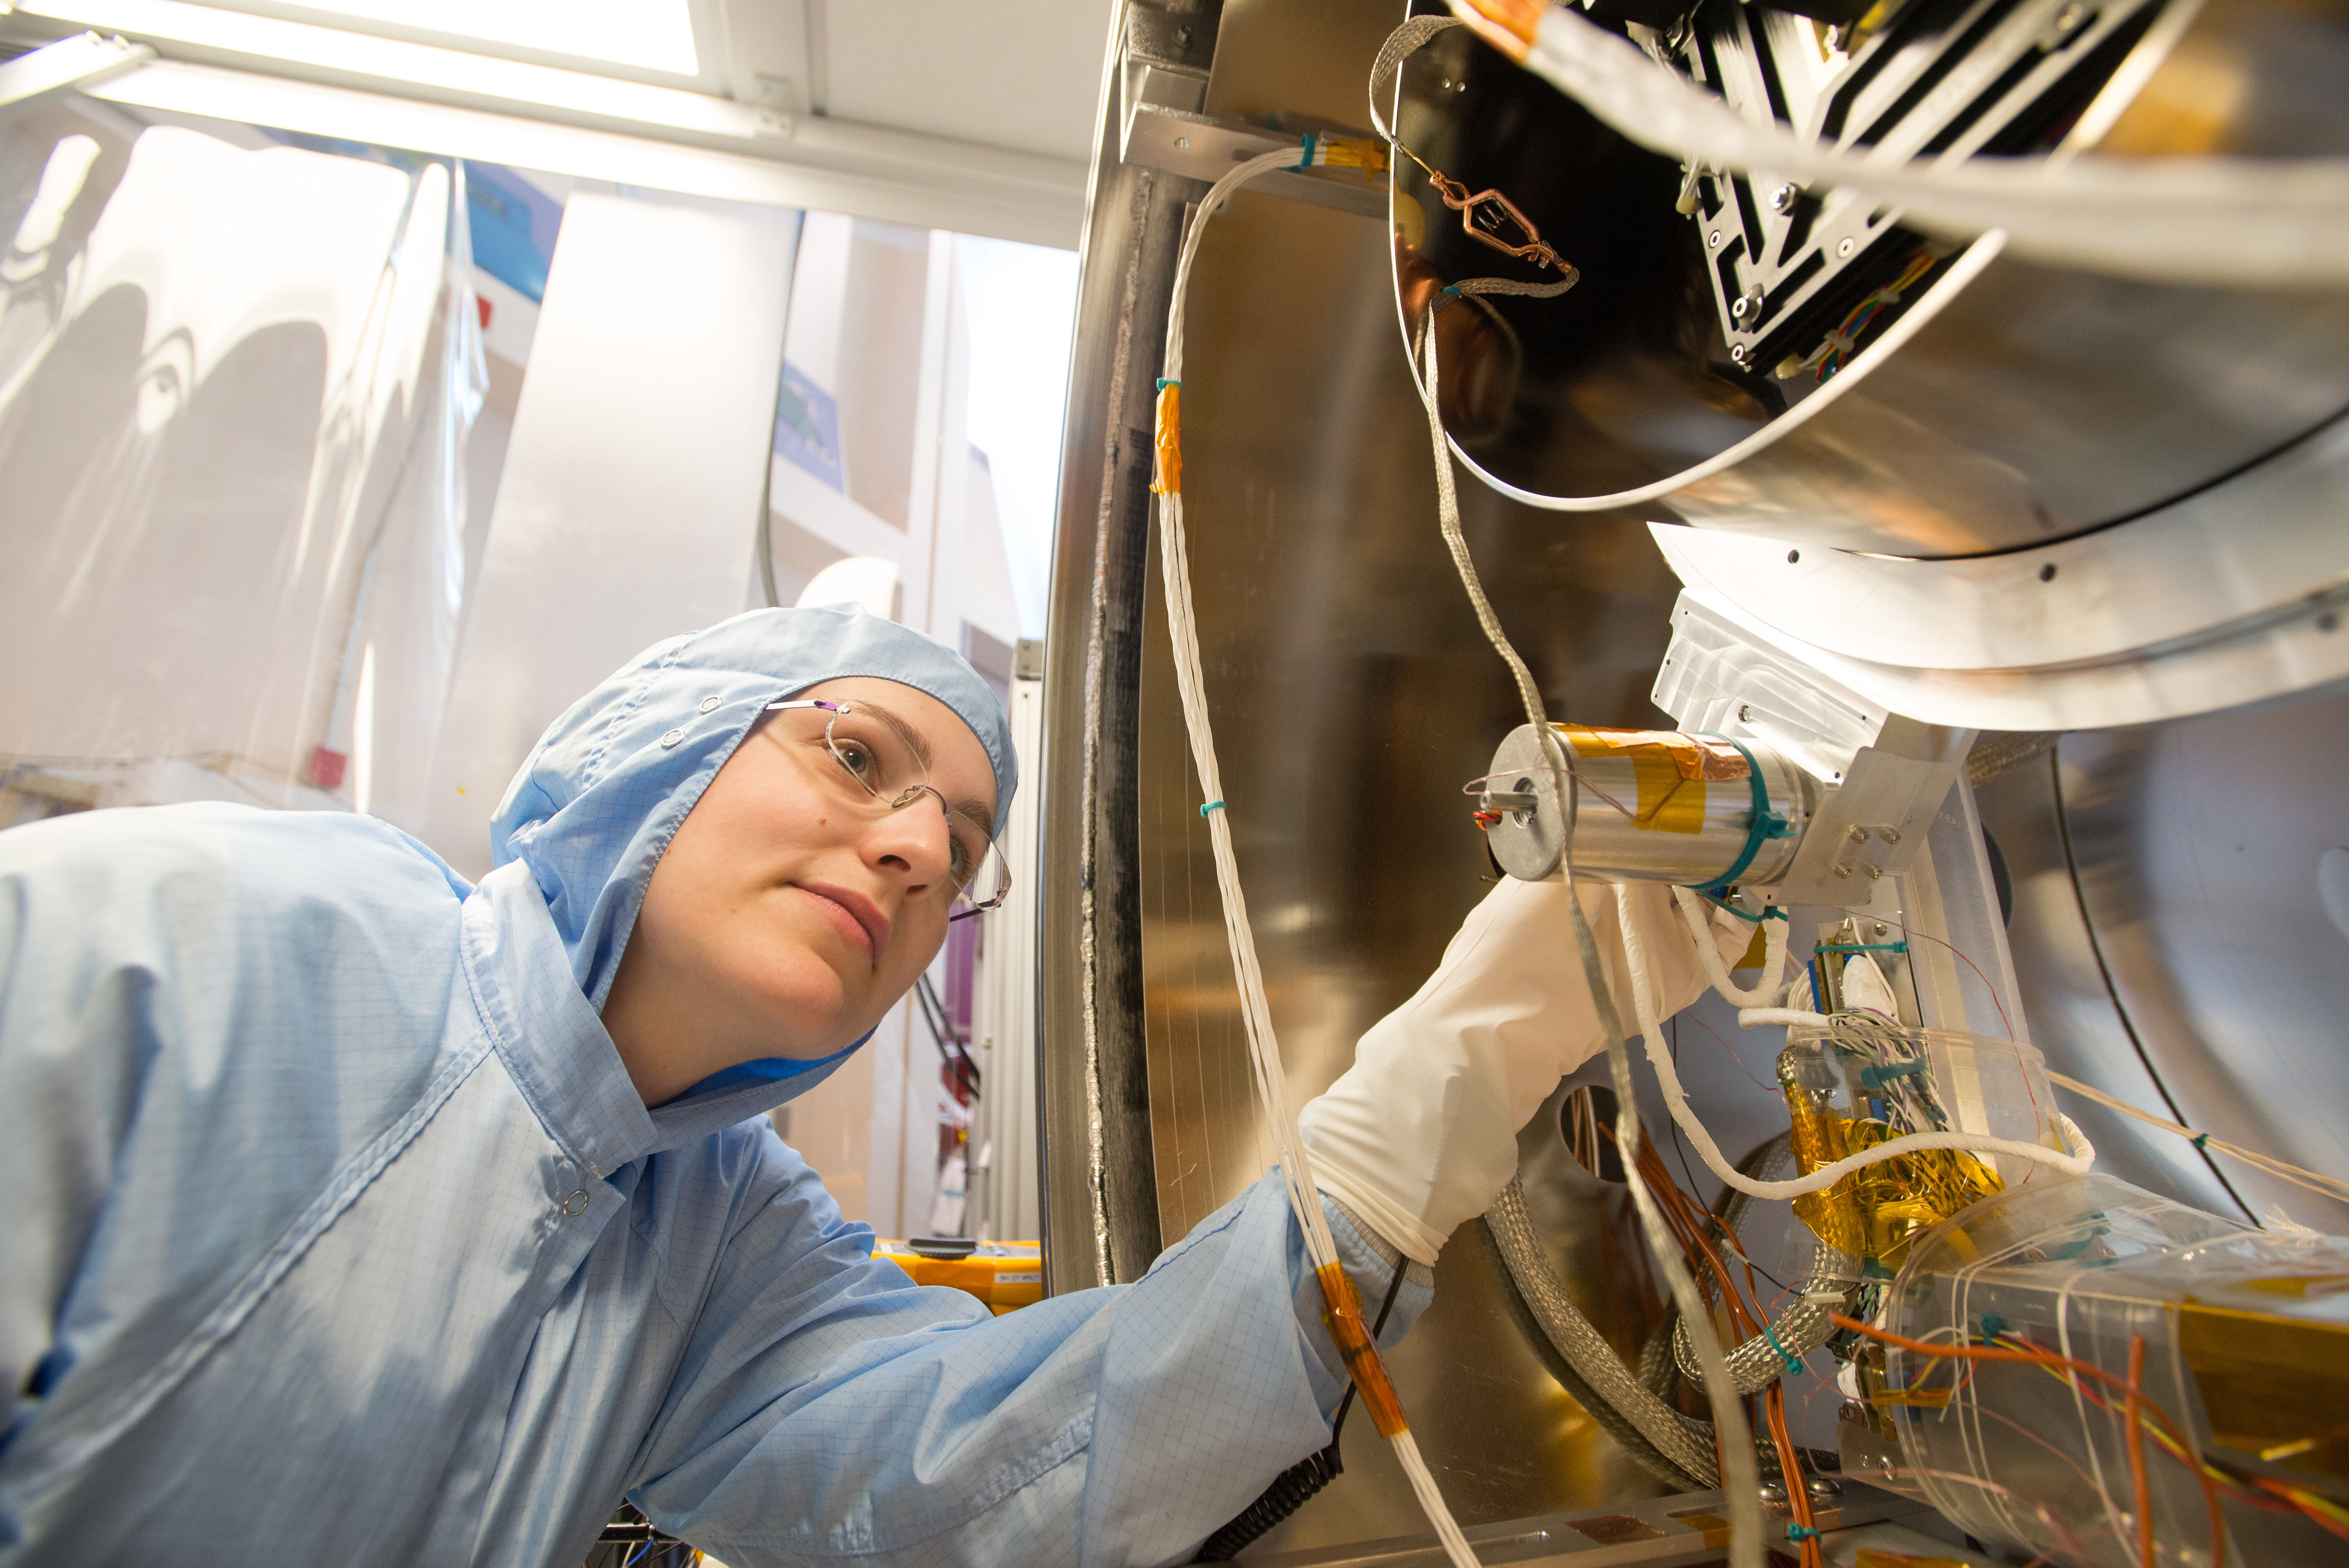 Woman wearing glasses and a blue Tyvek suit and white latex gloves inspects silver space instrument with wires coming out of it.